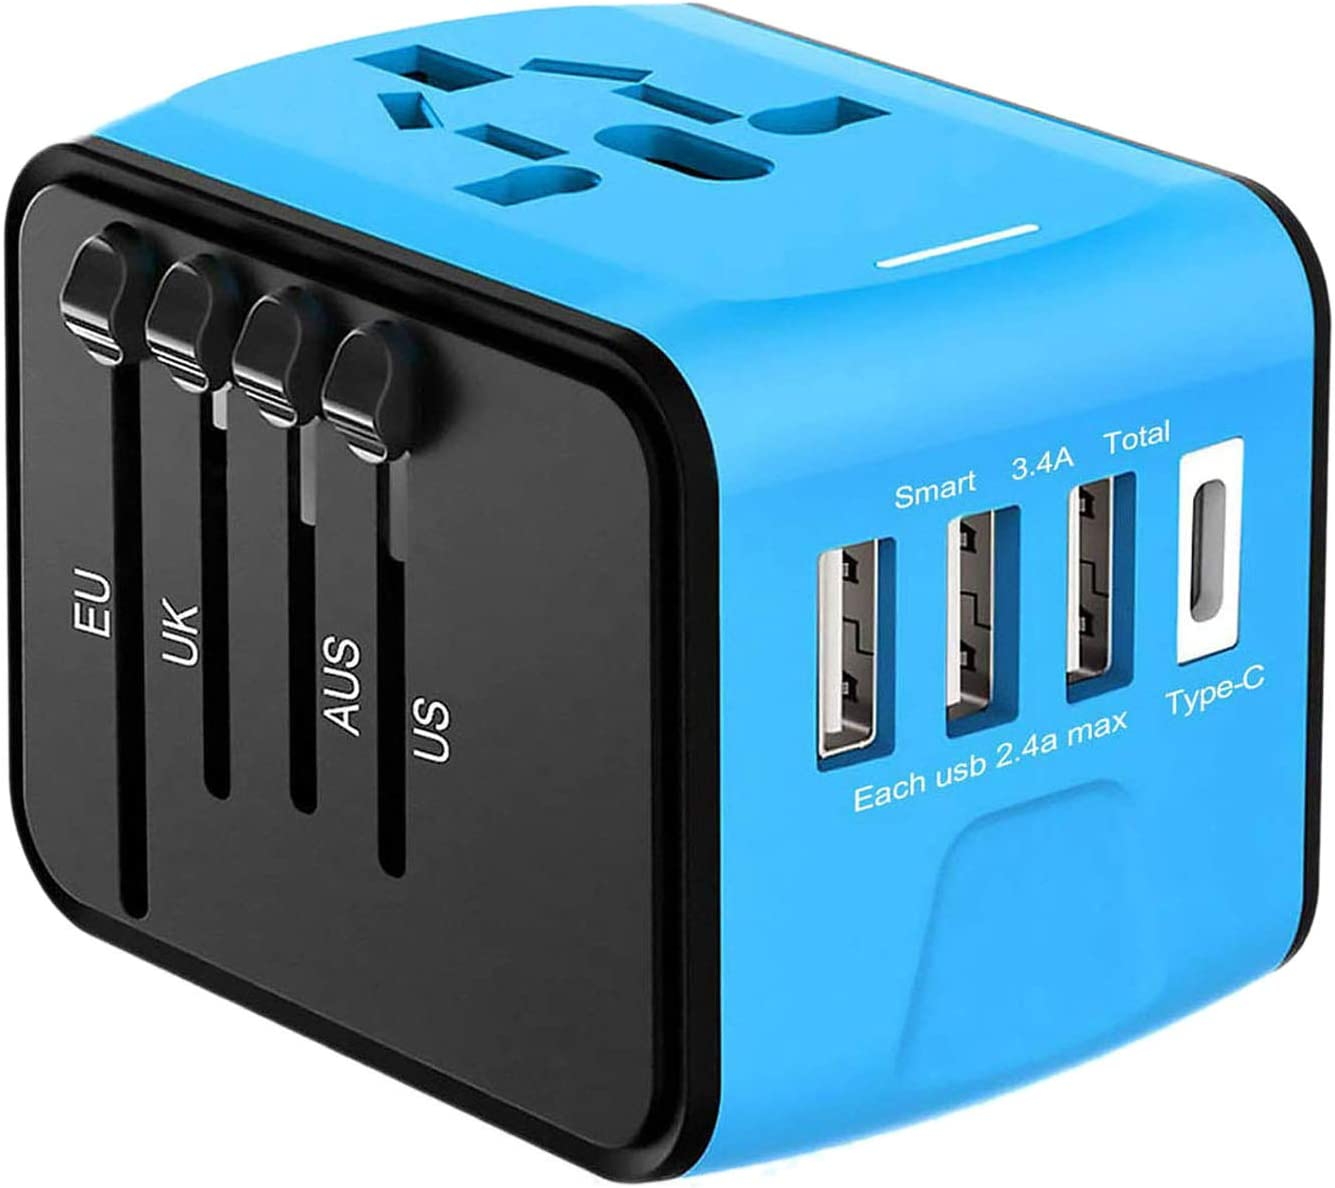 Ailuner Travel Adapter,Universal Power Adapter Type-C Wall Charger with 3.4A High Speed 4 USB Charger Port Worldwide Plugs Converter AC Power Outlet Multi-Nation Adapter for UK Europe AU Asia Italy